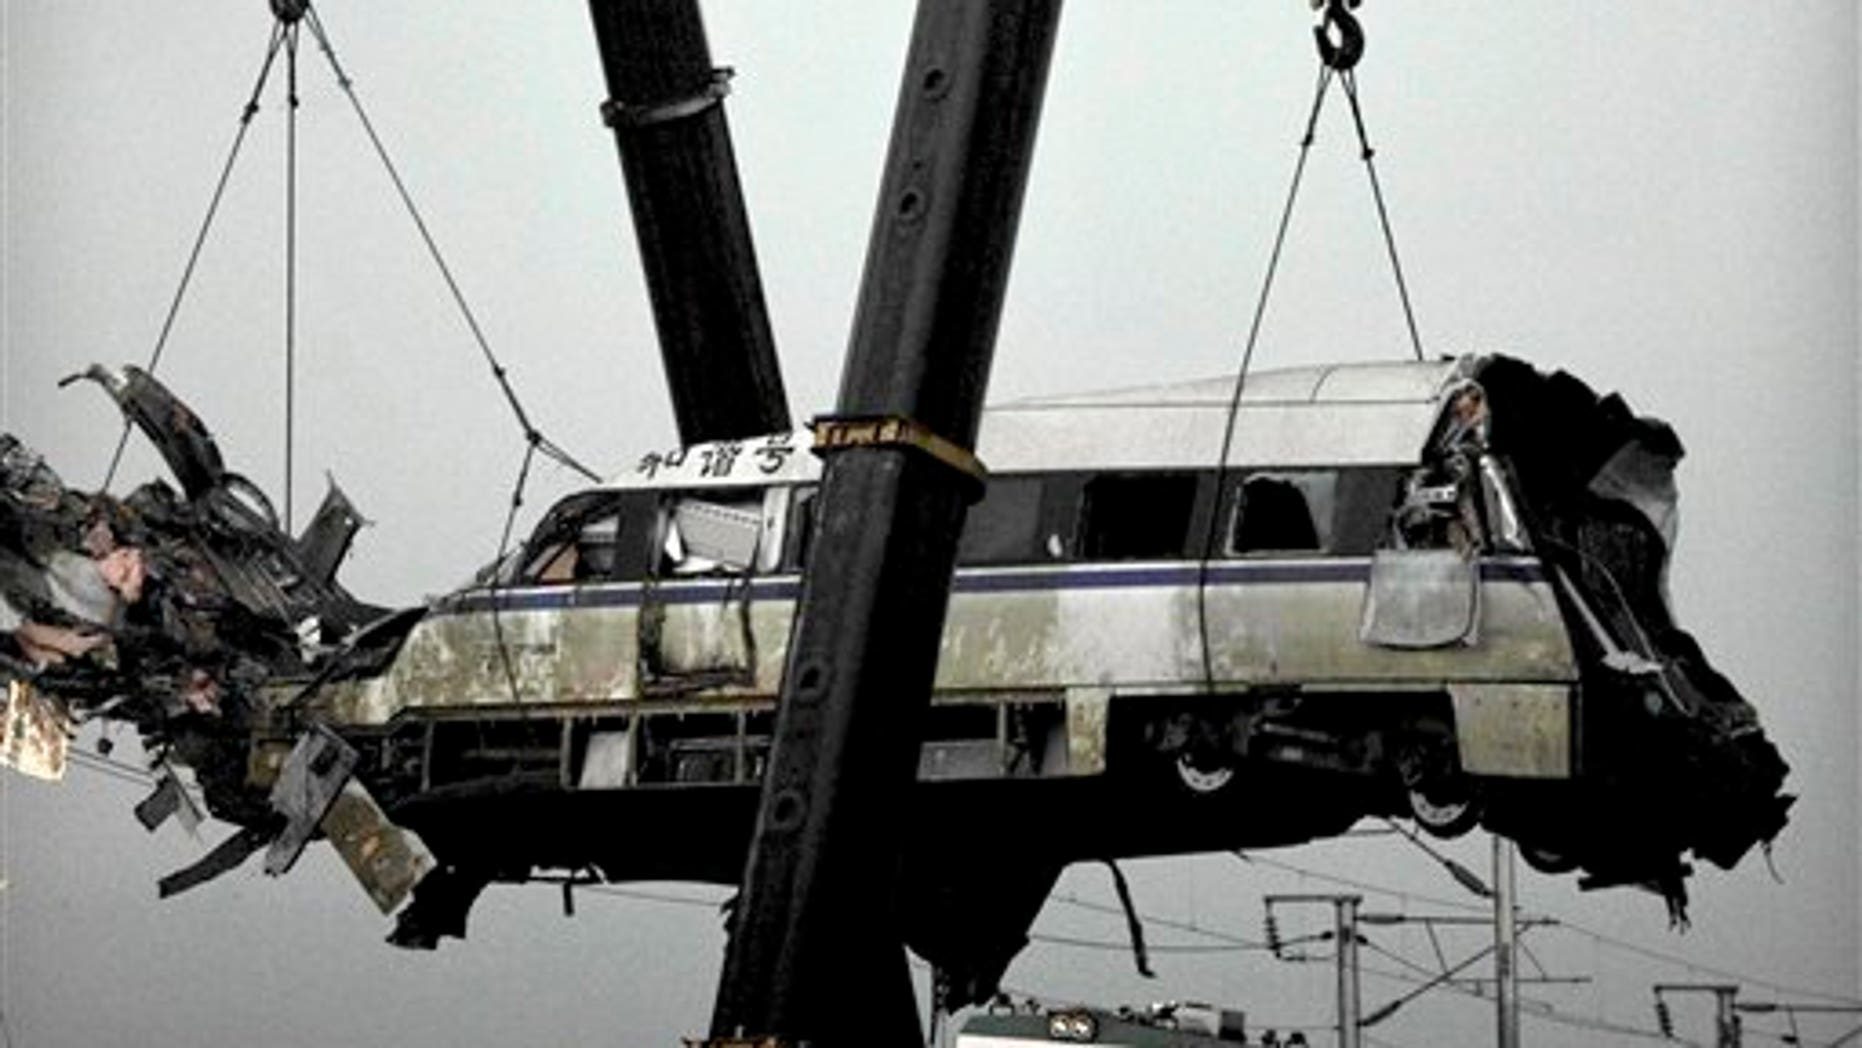 July 24, 2011: A wrecked passenger carriage is lifted off the bridge in Wenzhou in east China's Zhejiang province, after a train crash.